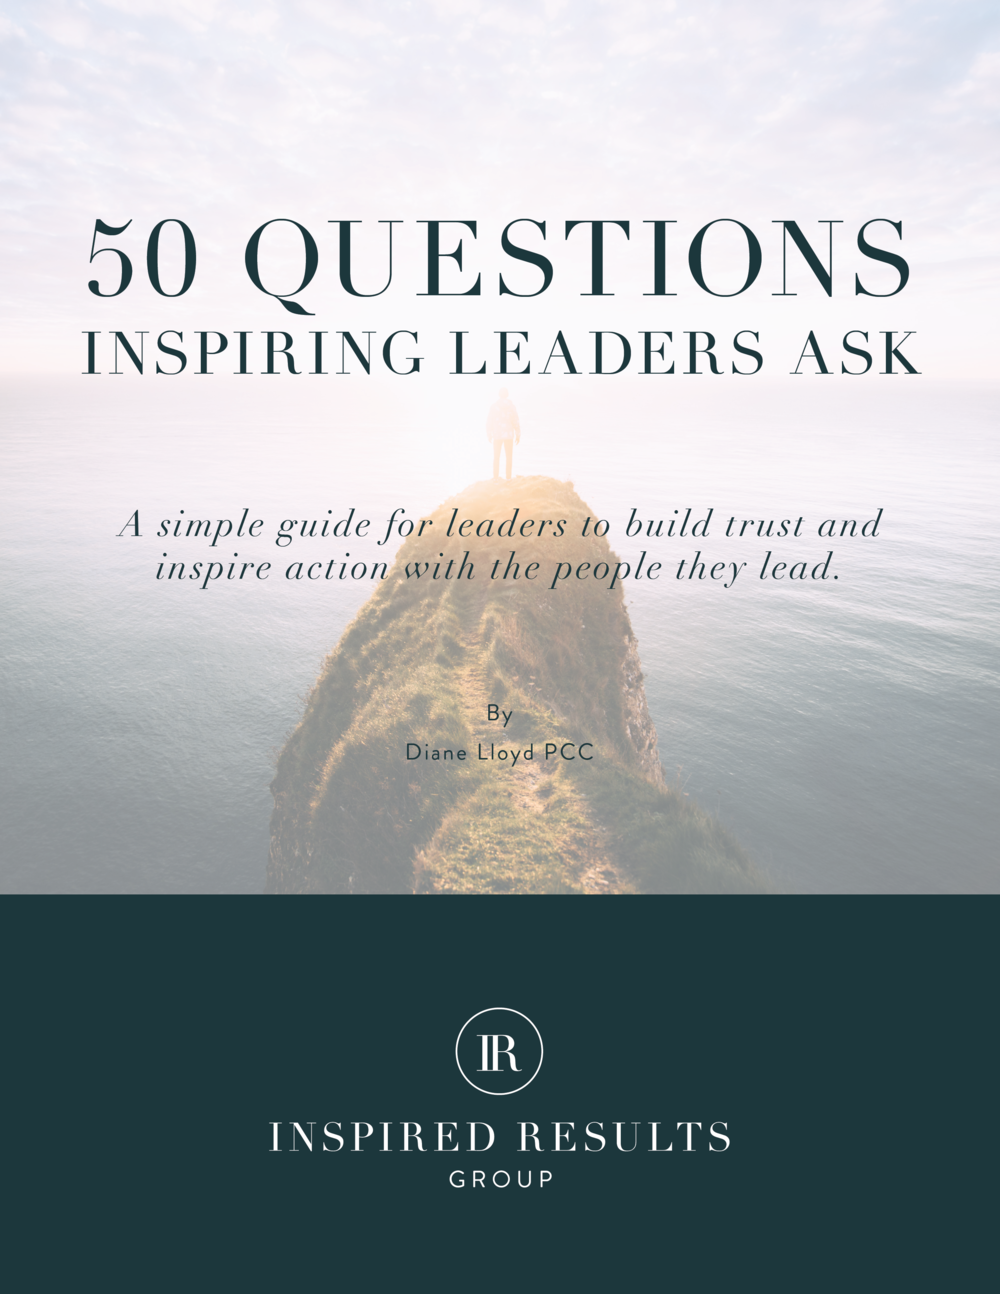 50questionsinspired-01.png